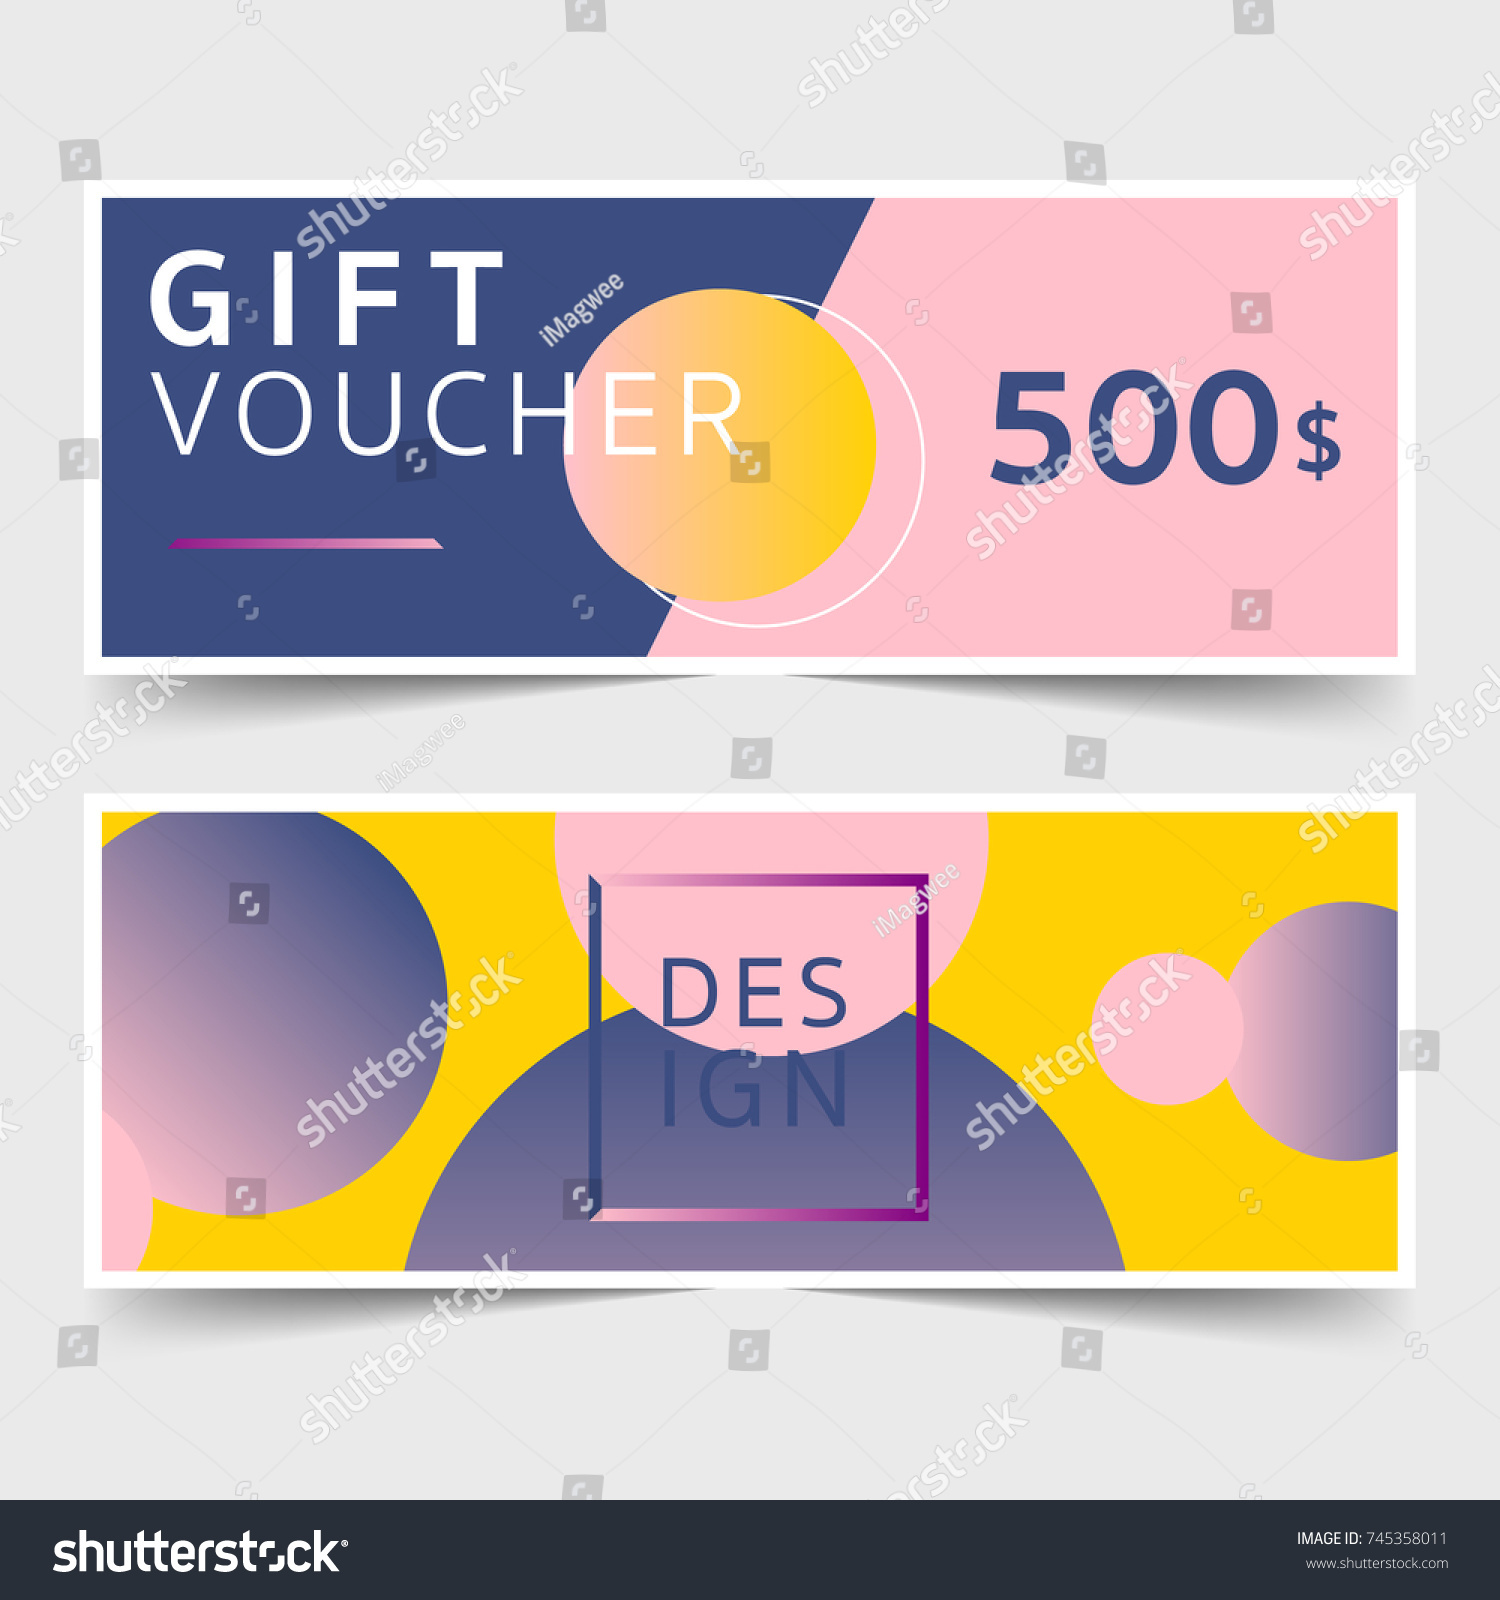 Adobe illustrator gift certificate template free image collections business letters gift certificate template word design templates xflitez Choice Image